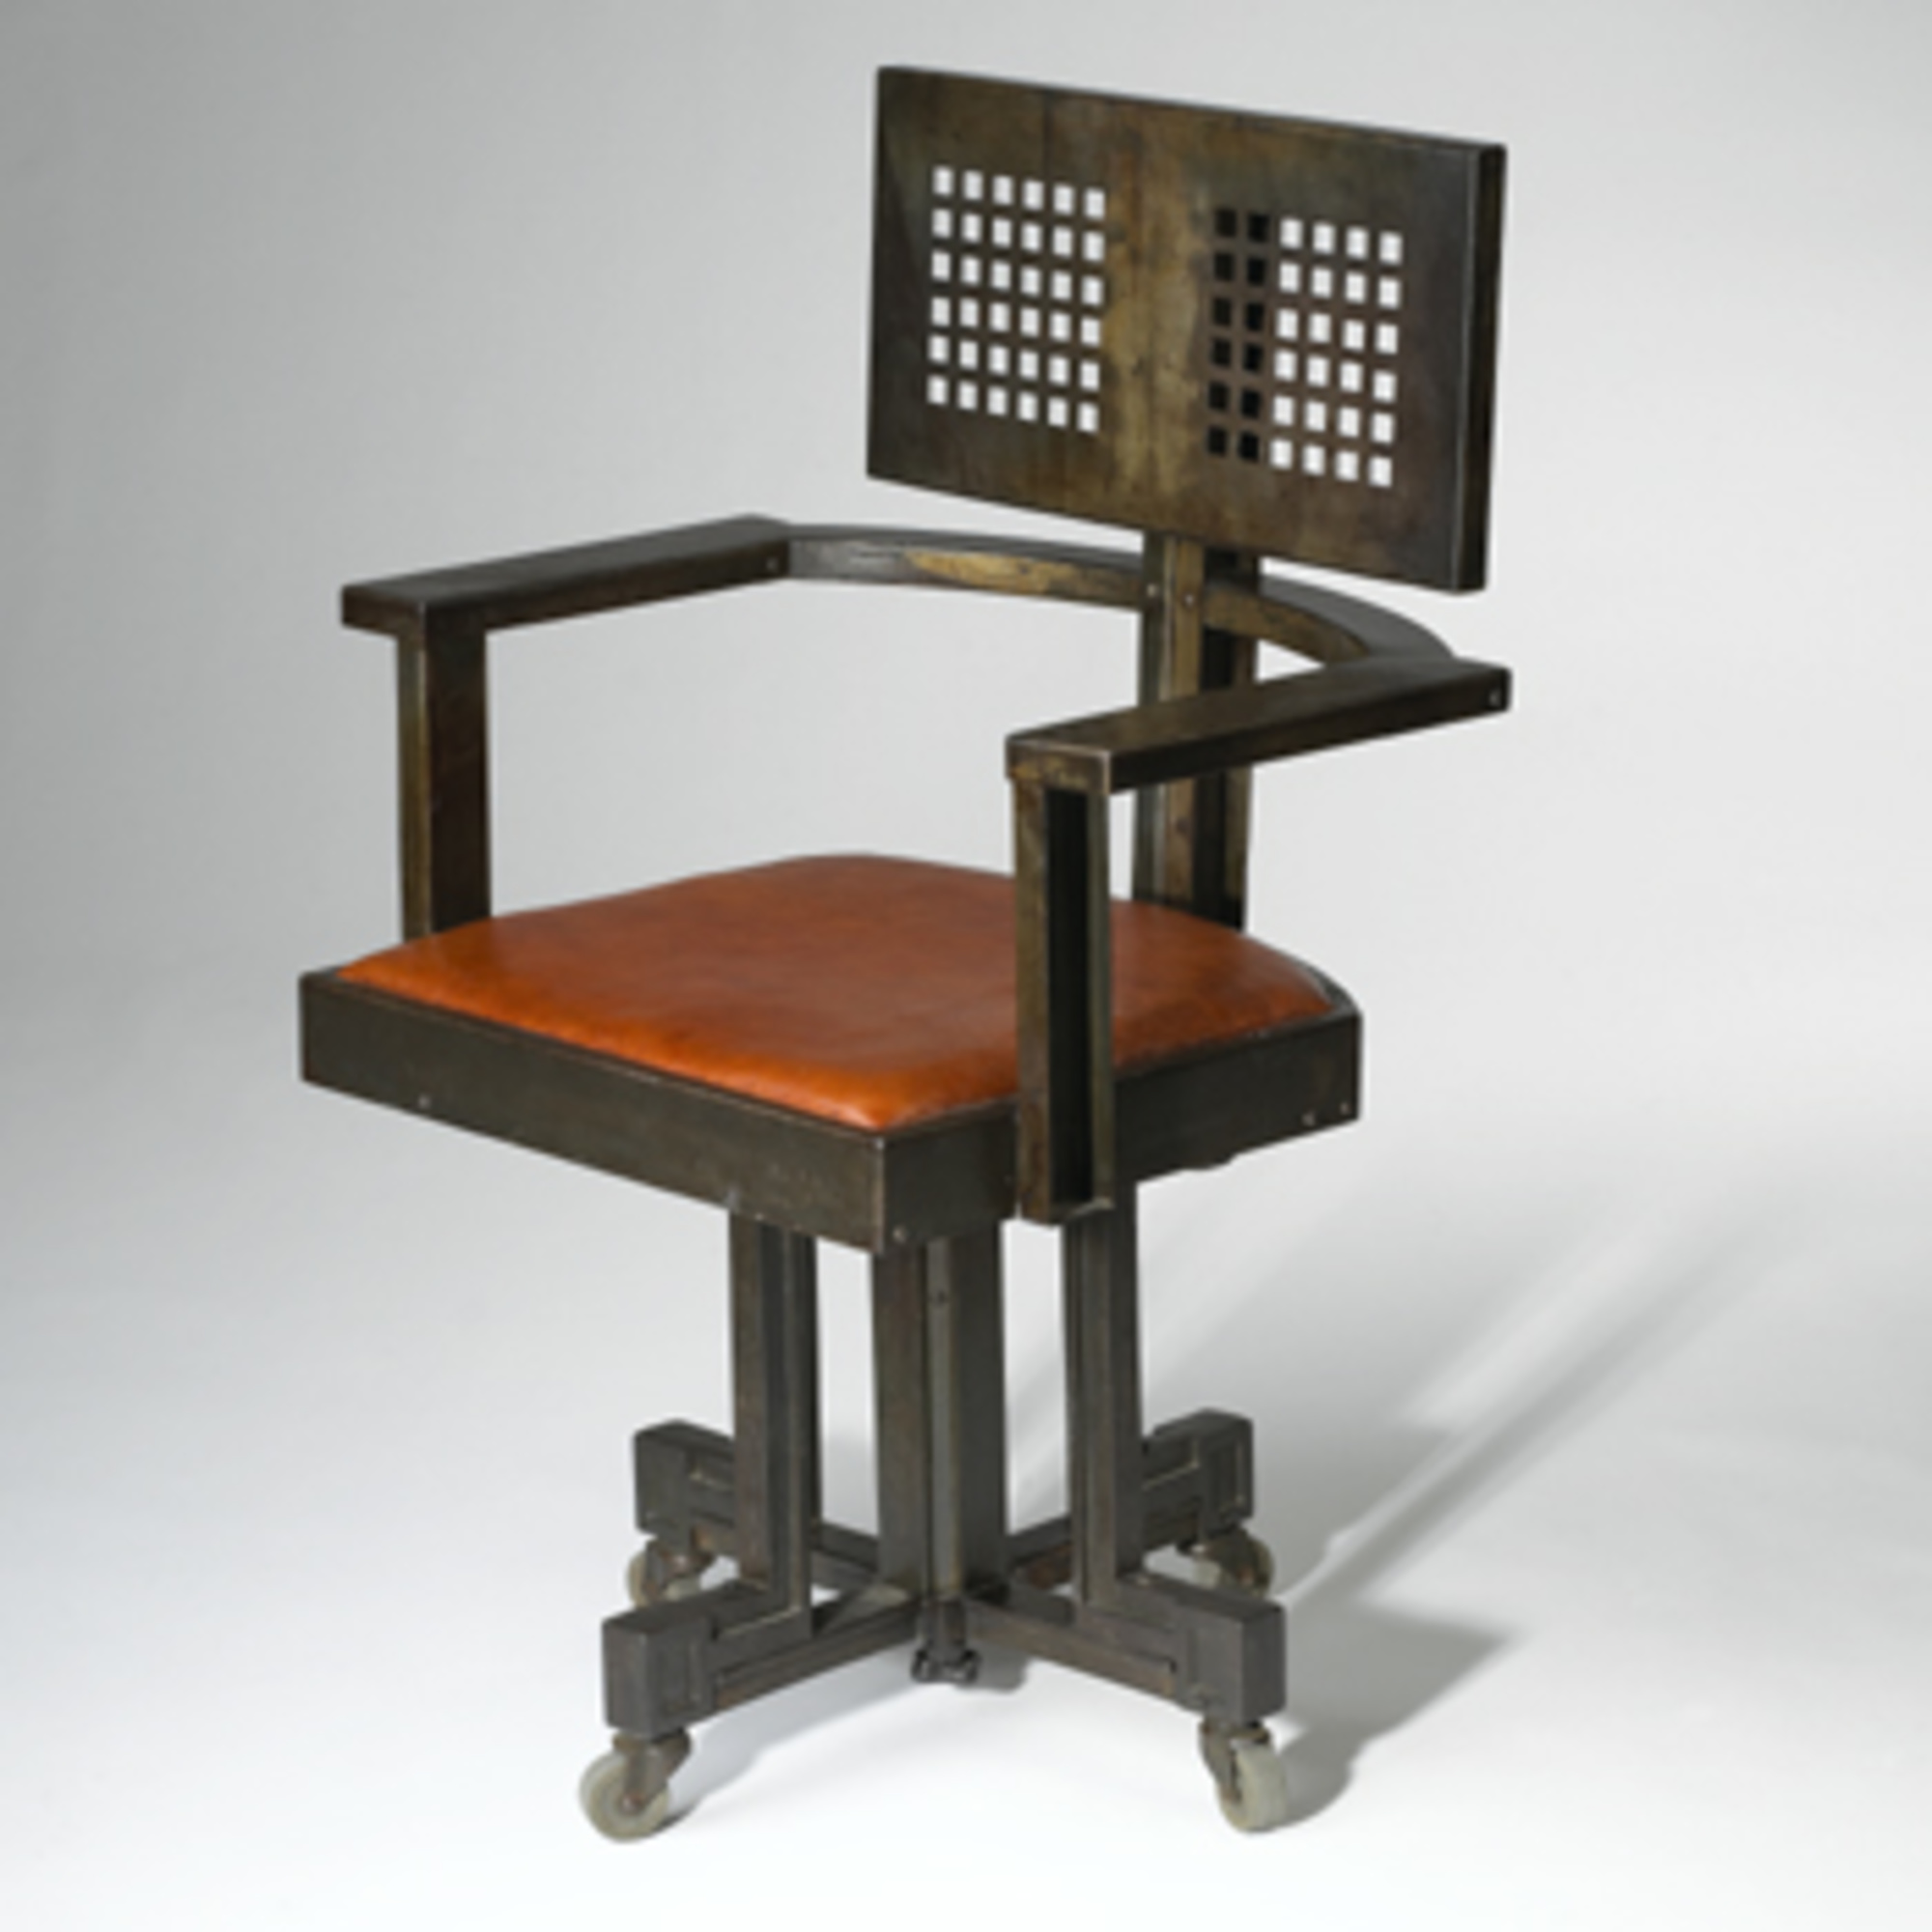 Frank Lloyd Wright Chairs 243 Frank Lloyd Wright Chair For The Larkin